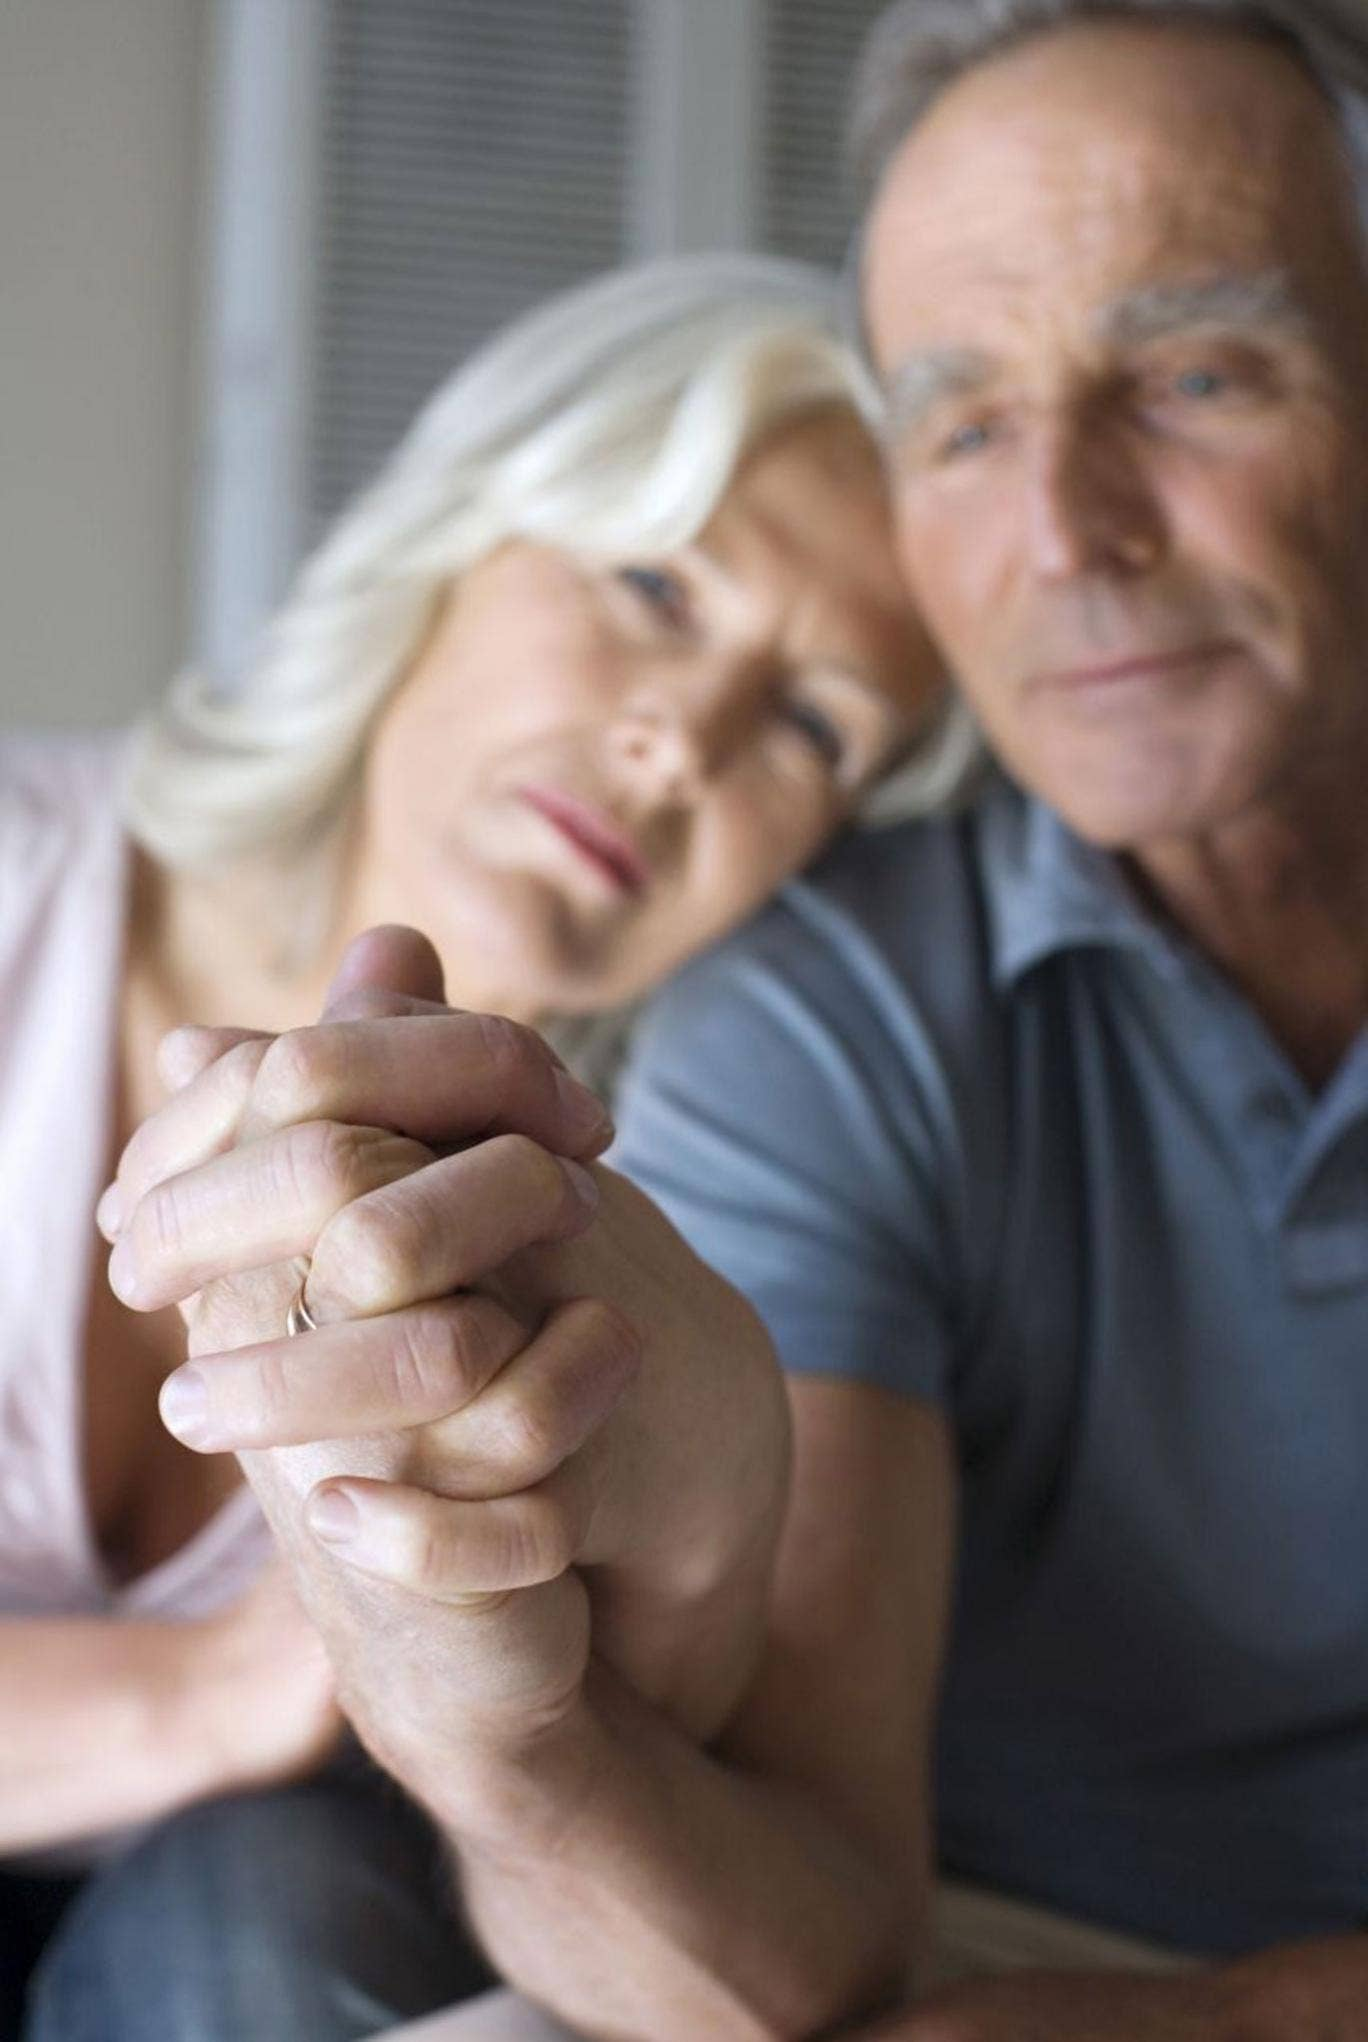 British pensioners spent £17.4bn on electricity and fuel bills in 2012